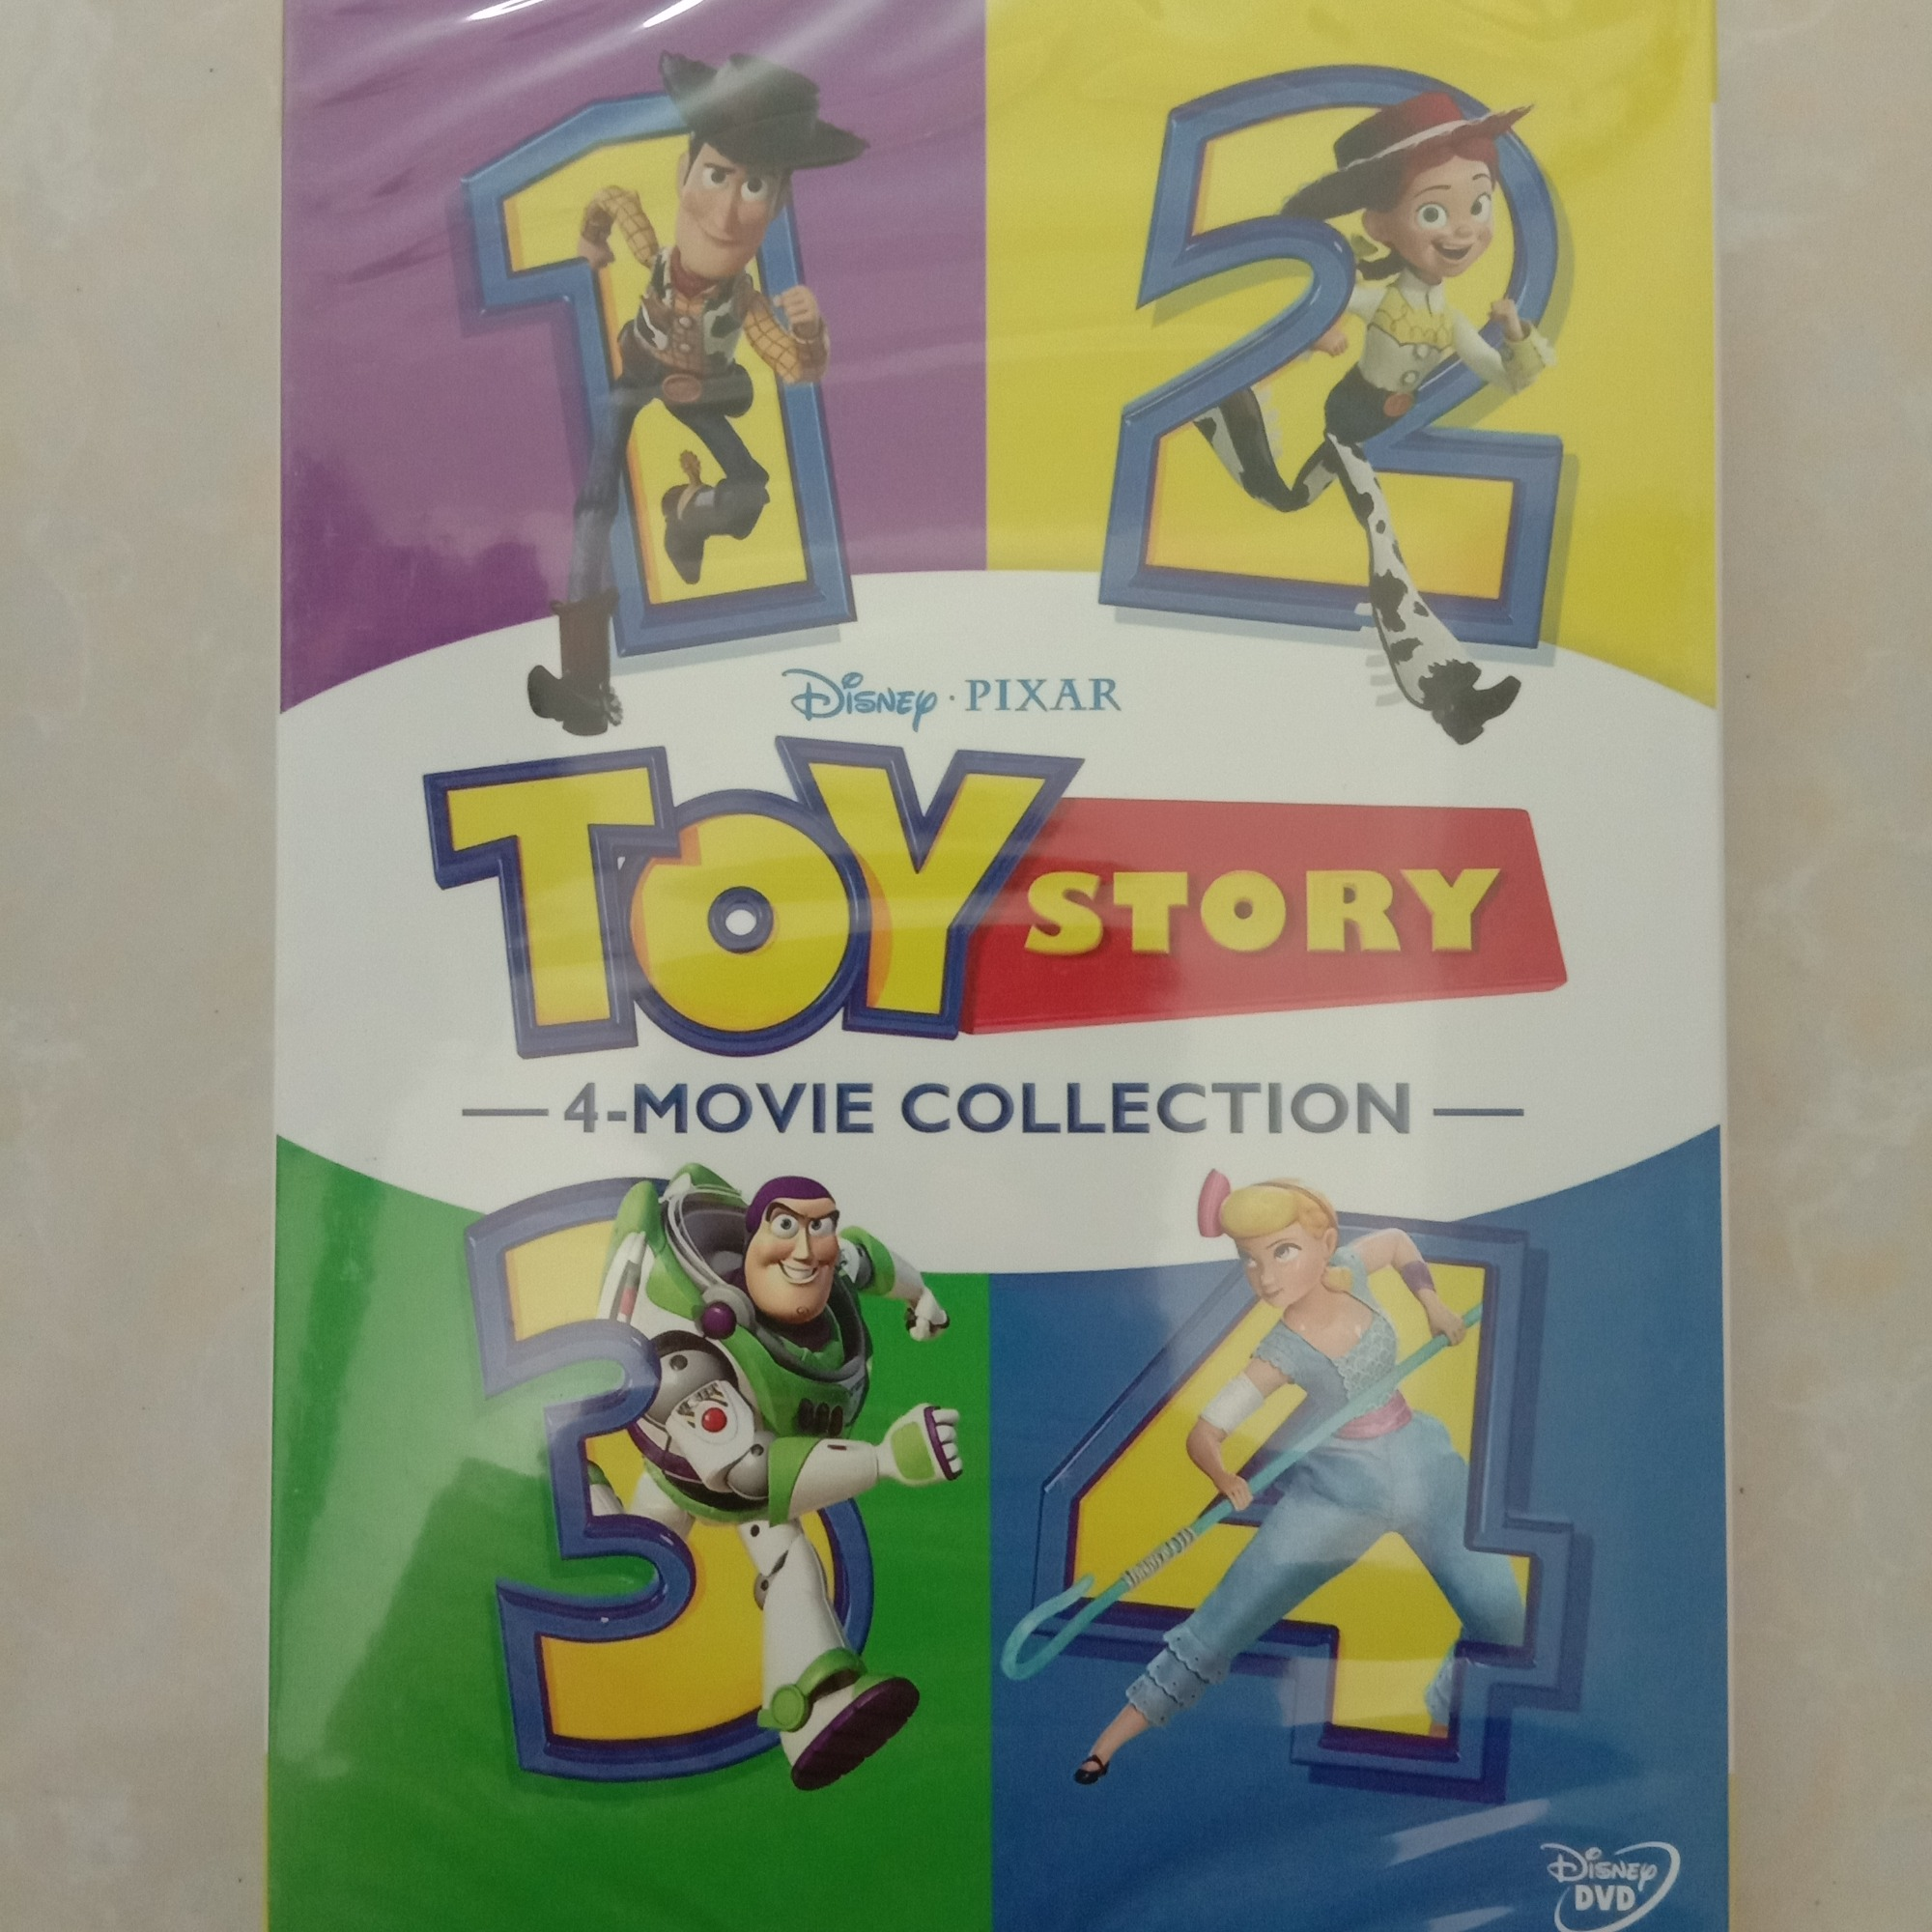 TOY STORY 1-4 Brand New 4-Movie DVD Collection 4 Films 1 2 3 4 (DVD,6-Disc) NEW + Free shipping